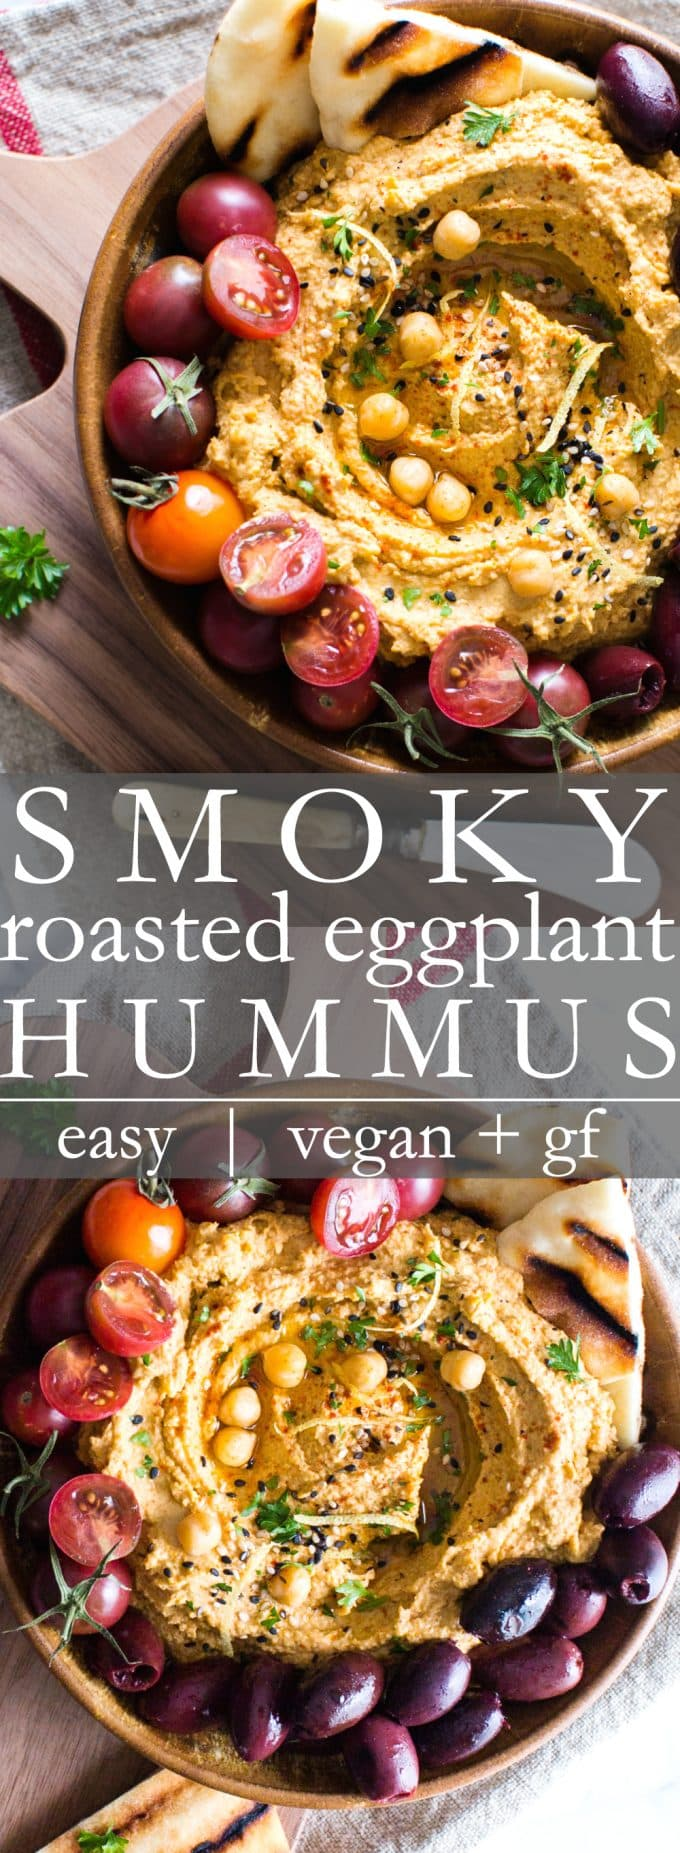 Smoky Roasted Eggplant Hummus